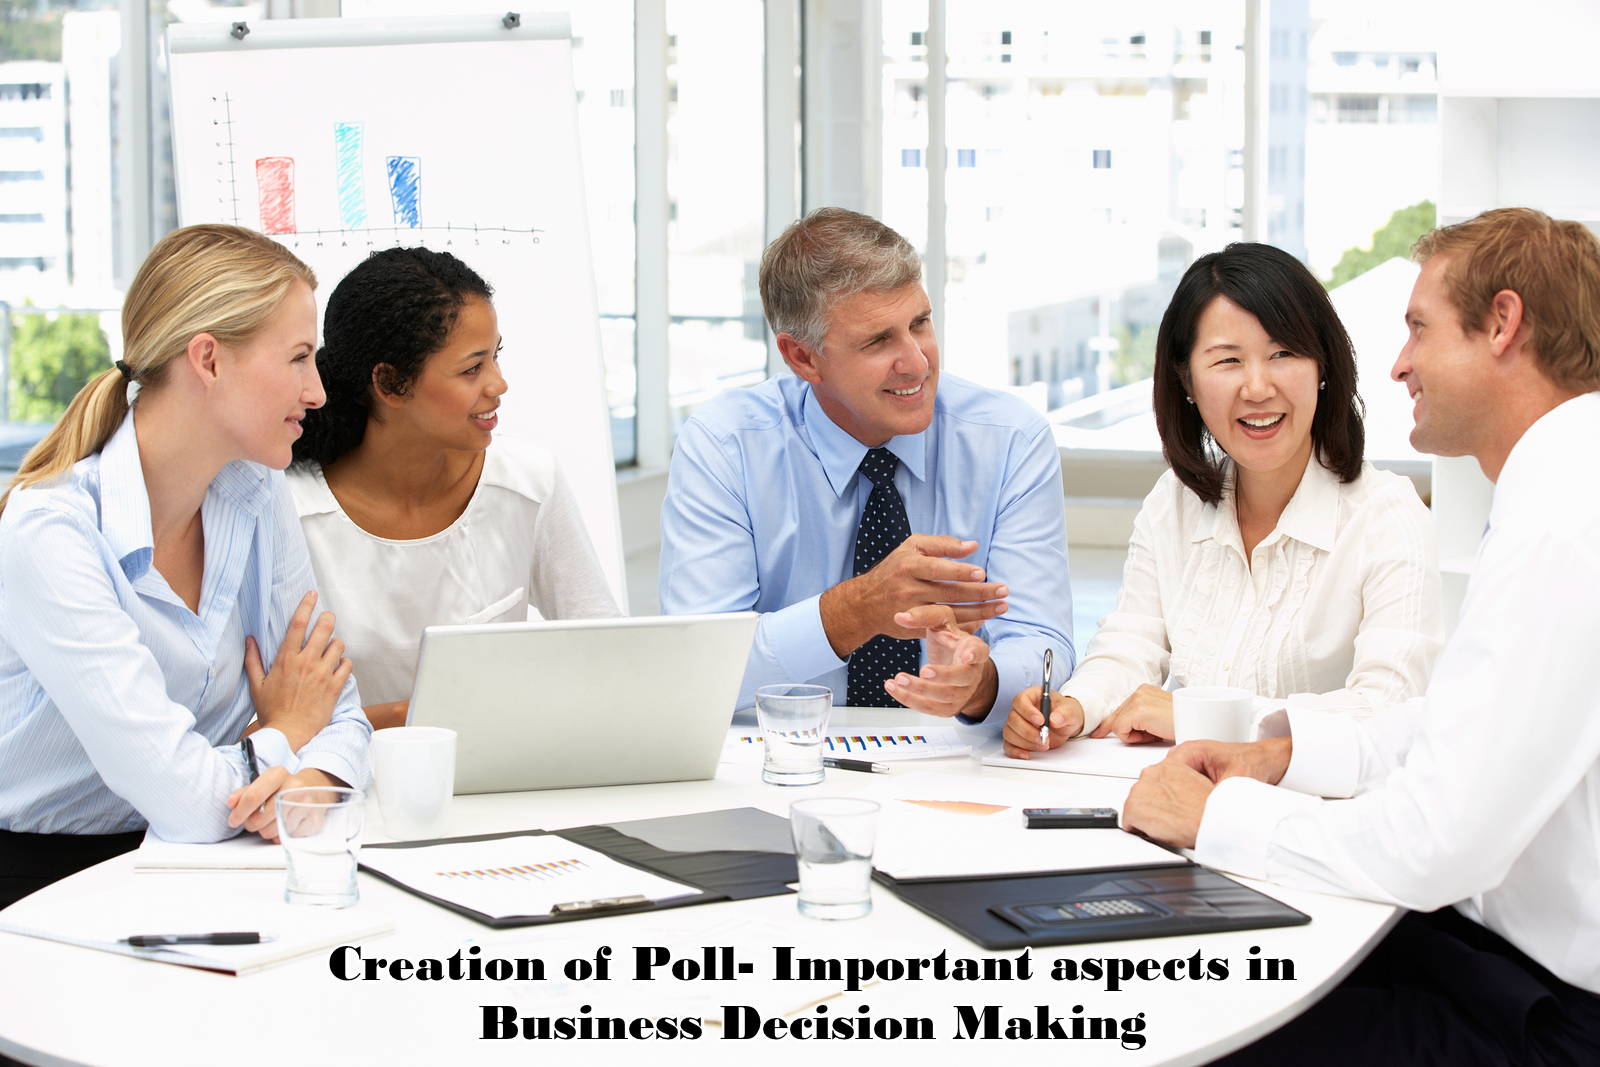 creation-of-poll-important-aspects-in-business-decision-making